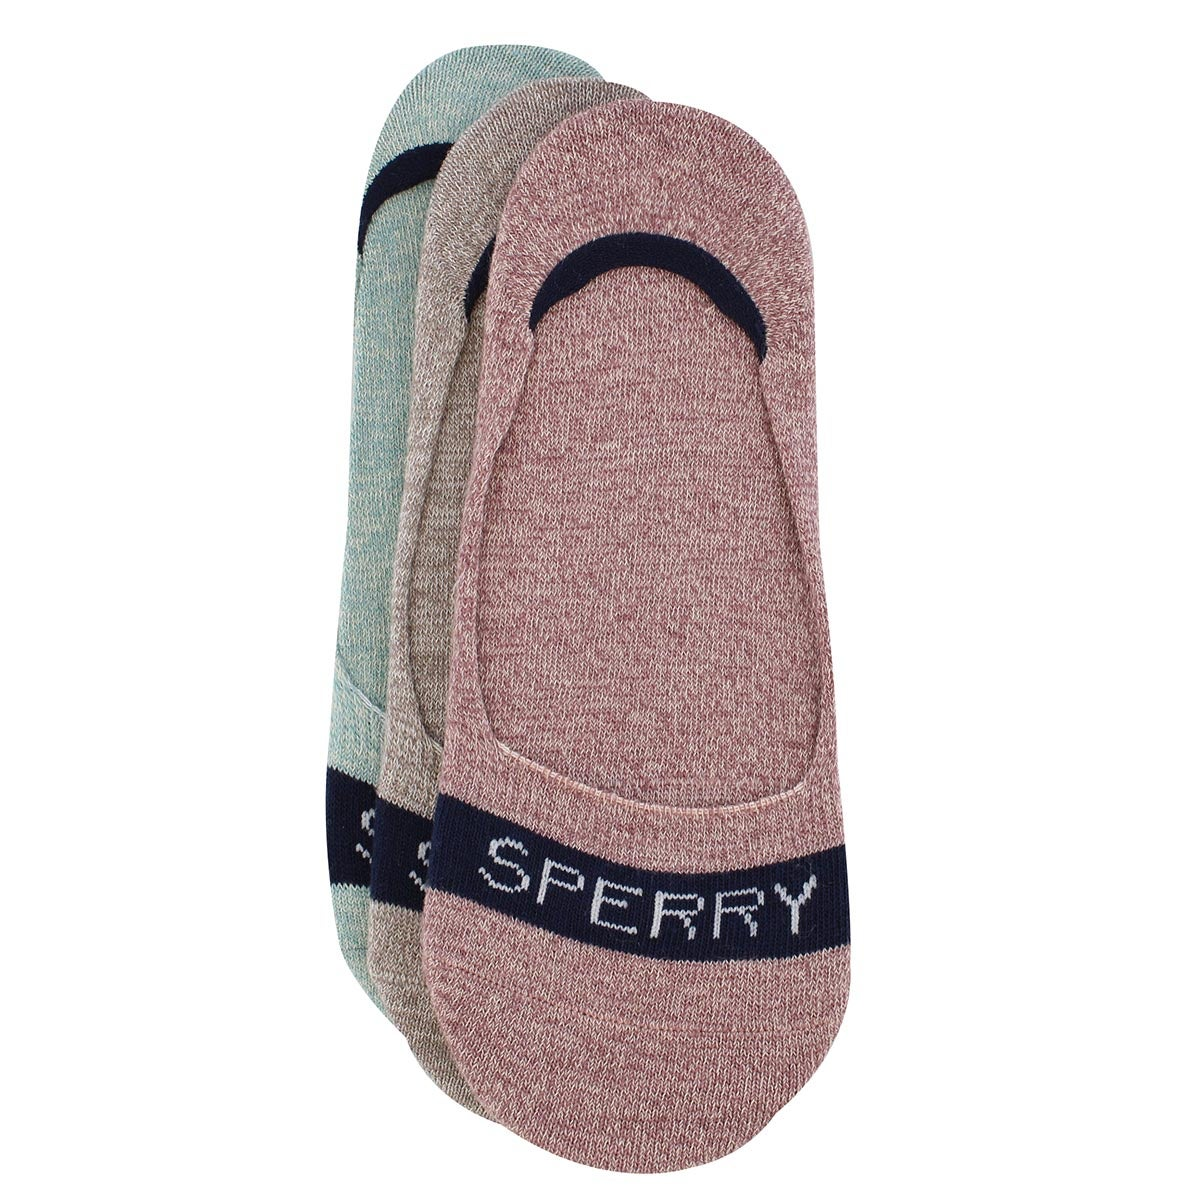 Women's MARL pink/grey/blue liners - 3 pack